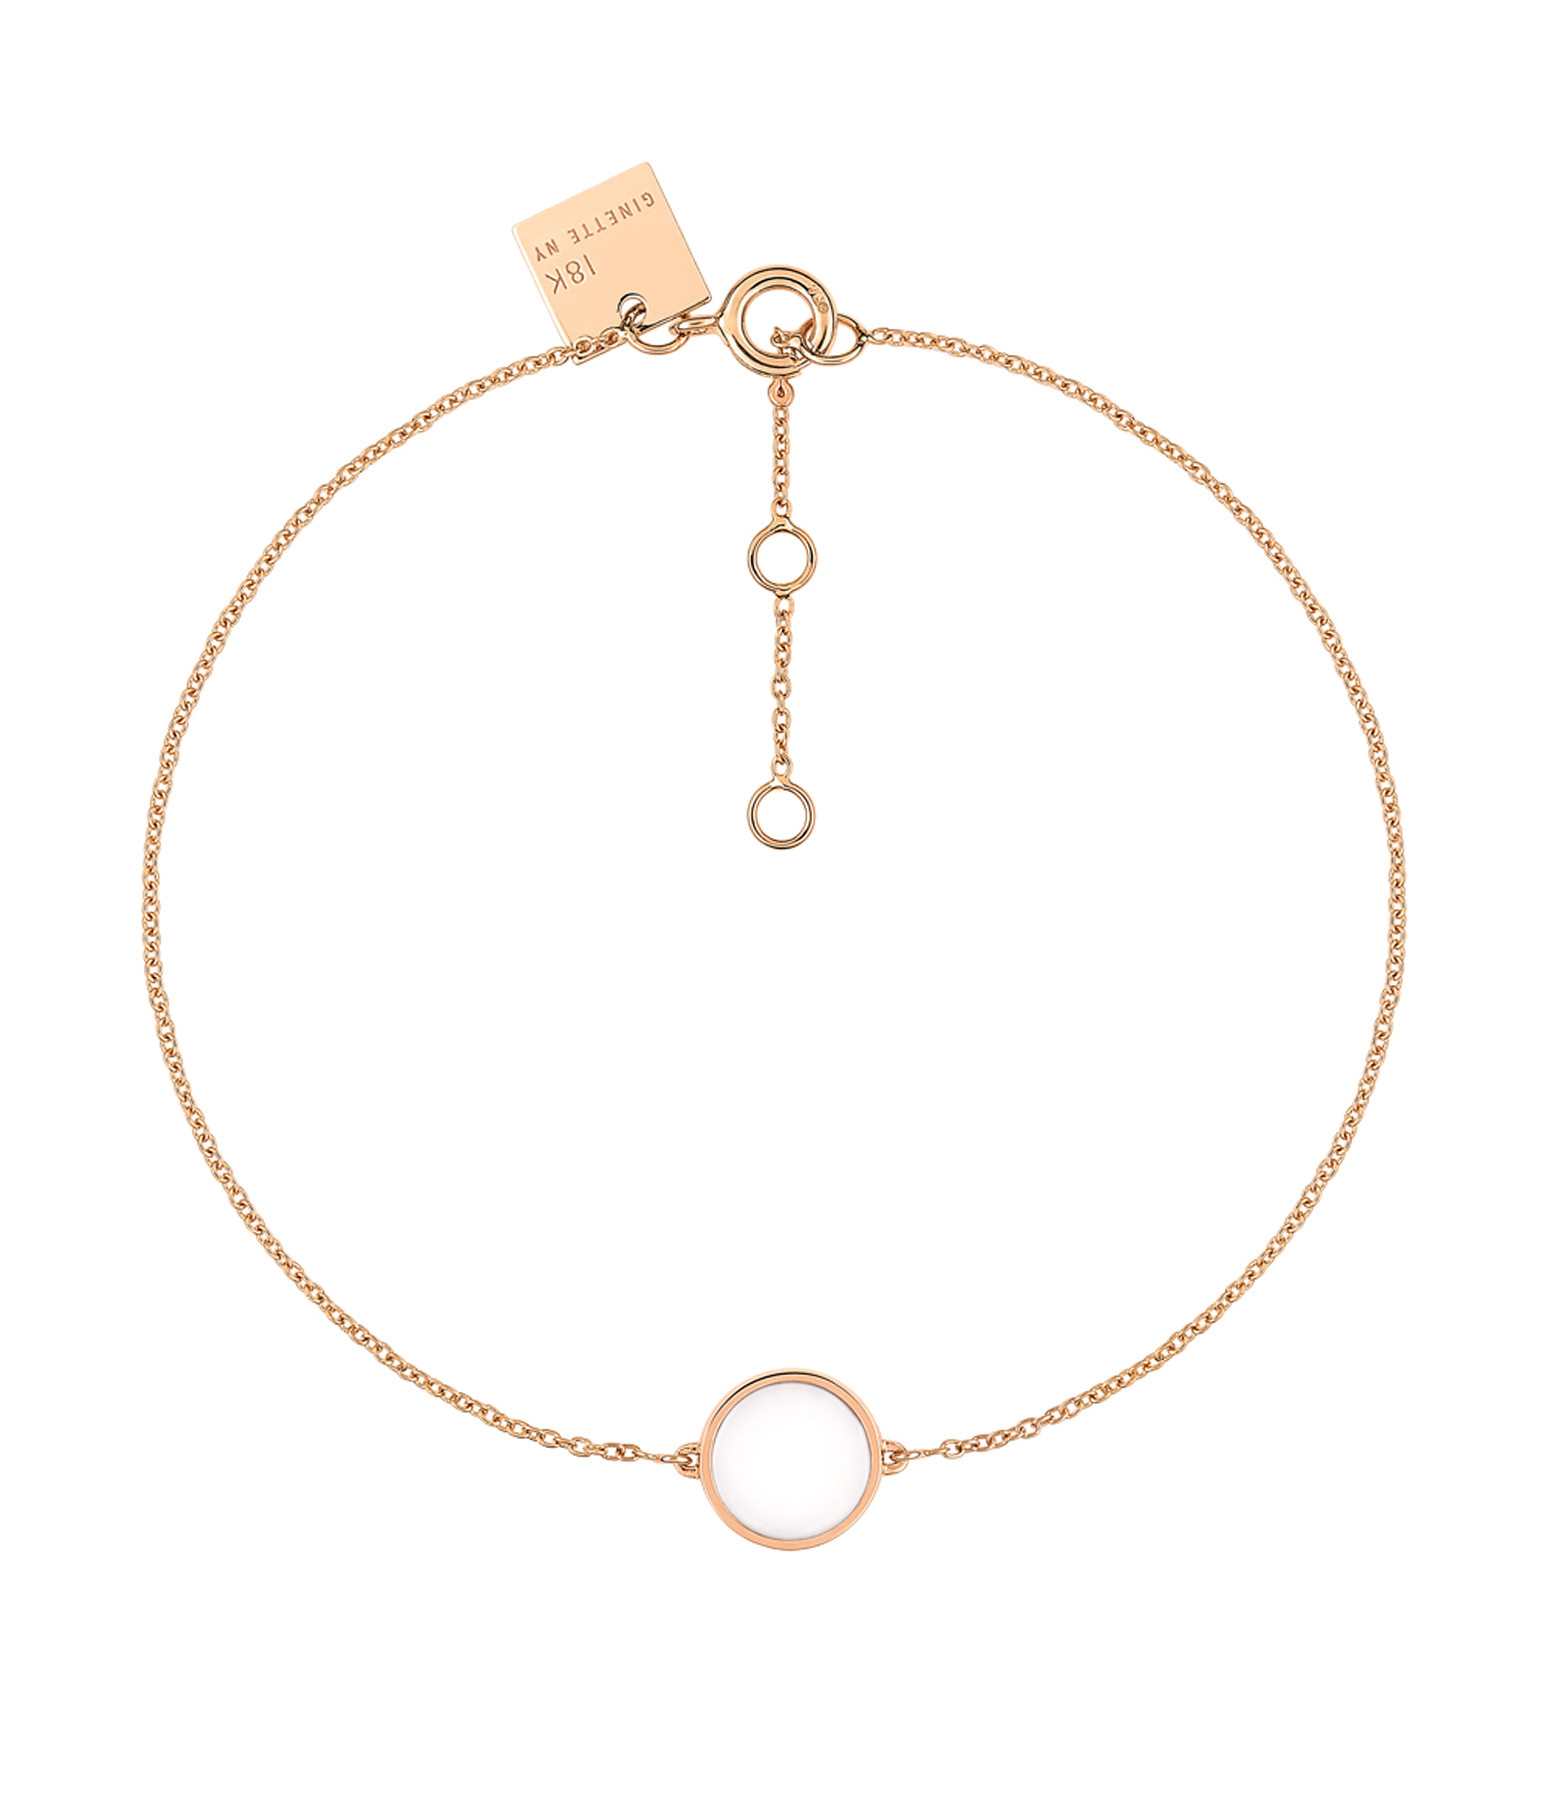 GINETTE NY - Bracelet Ever Mini Disc Or Rose Agate Blanche